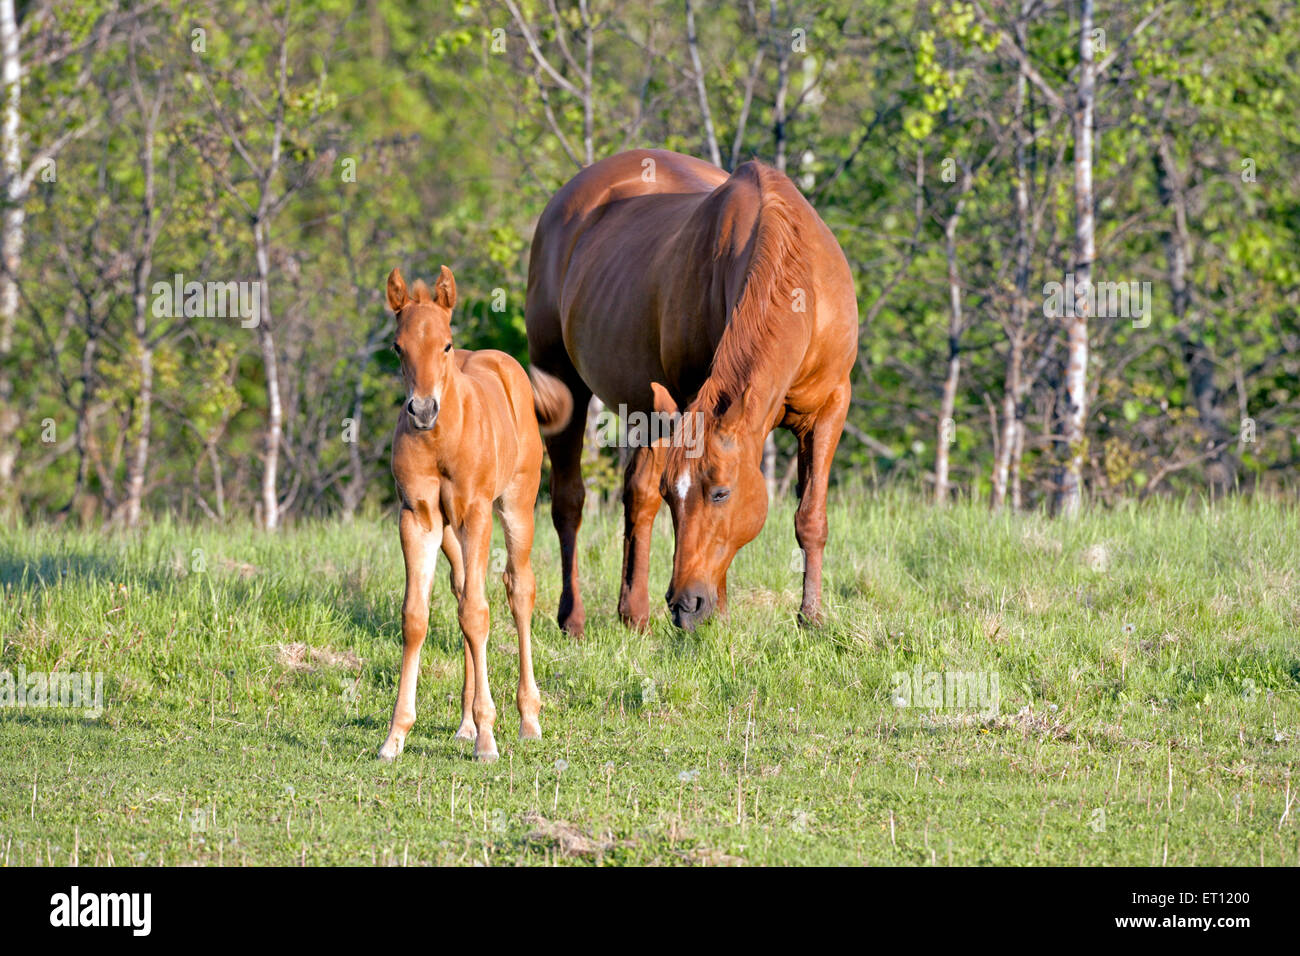 Sorrel Quarter-horse Mare and Foal together in meadow - Stock Image